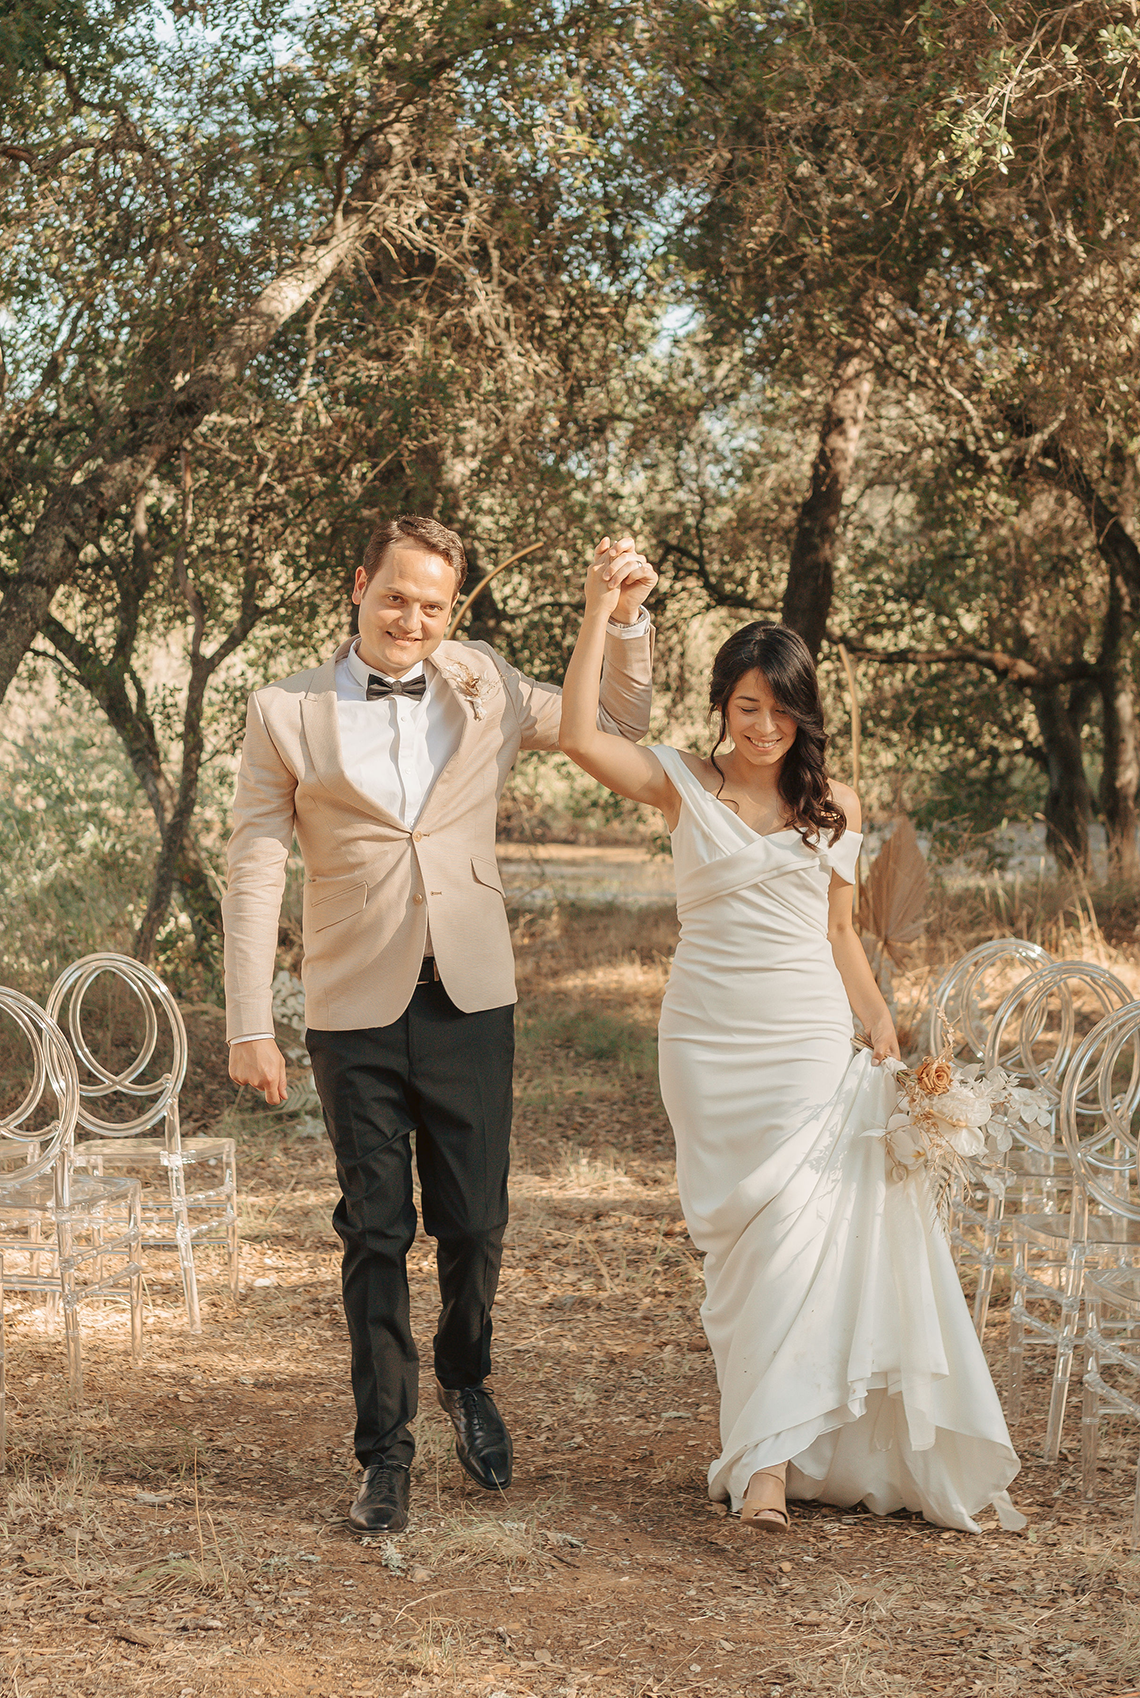 Autumn Neutral-toned Wedding Inspiration – Carly Peterson Creative 10